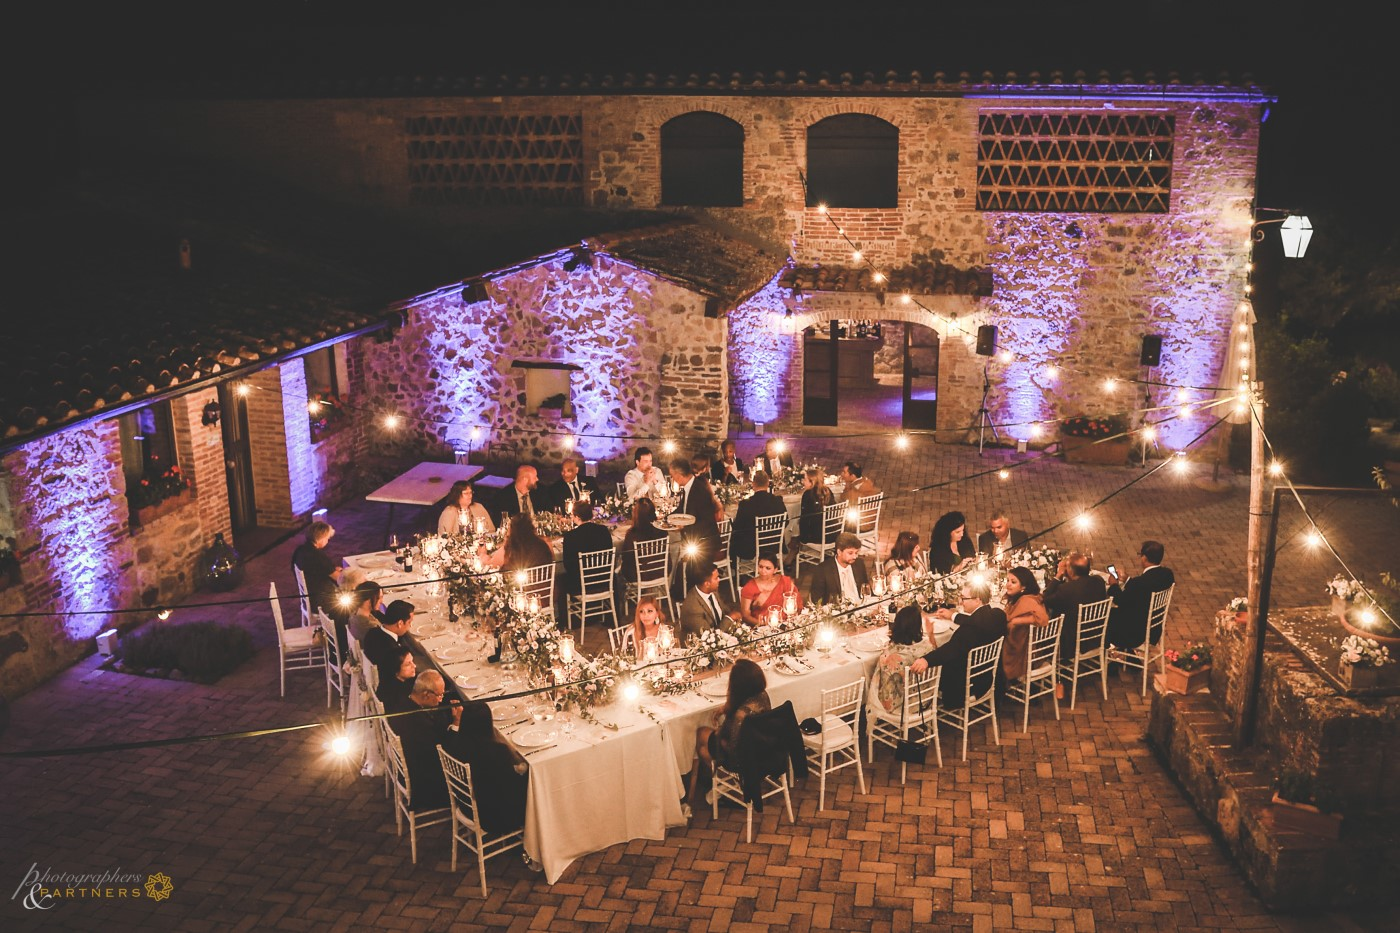 An overview photo of the tables in the courtyard.